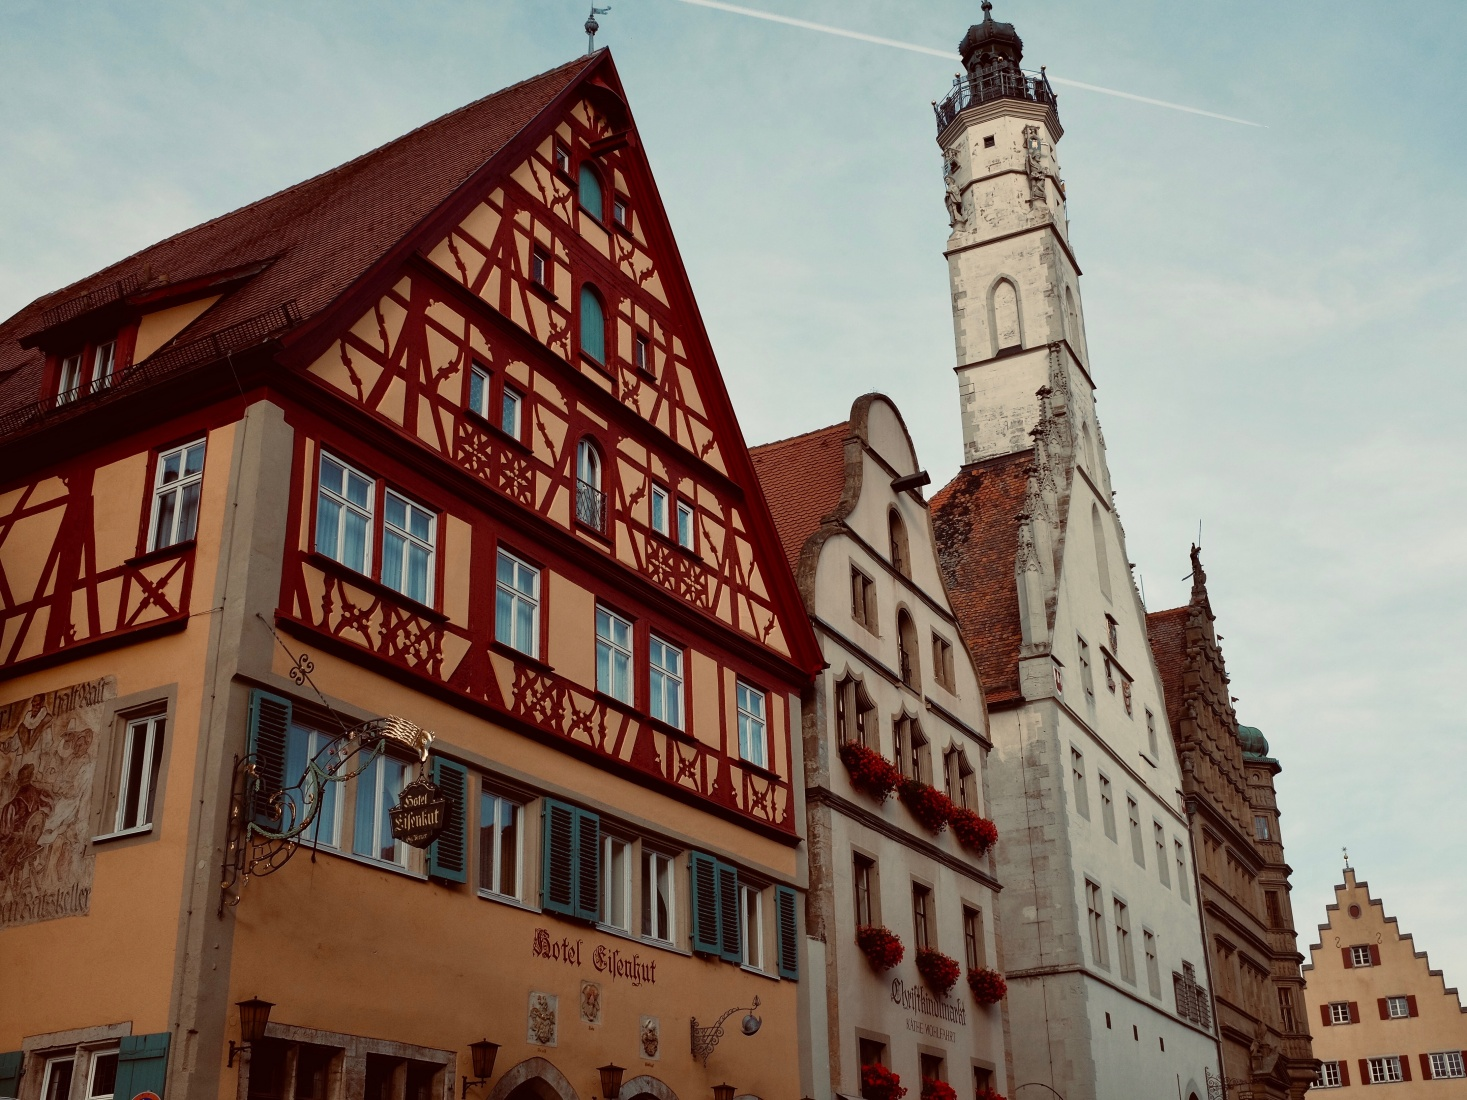 Rothenburg ob der Tauber, Germany, with trademark half-timbered houses and the tall Rathaus tower in the background.